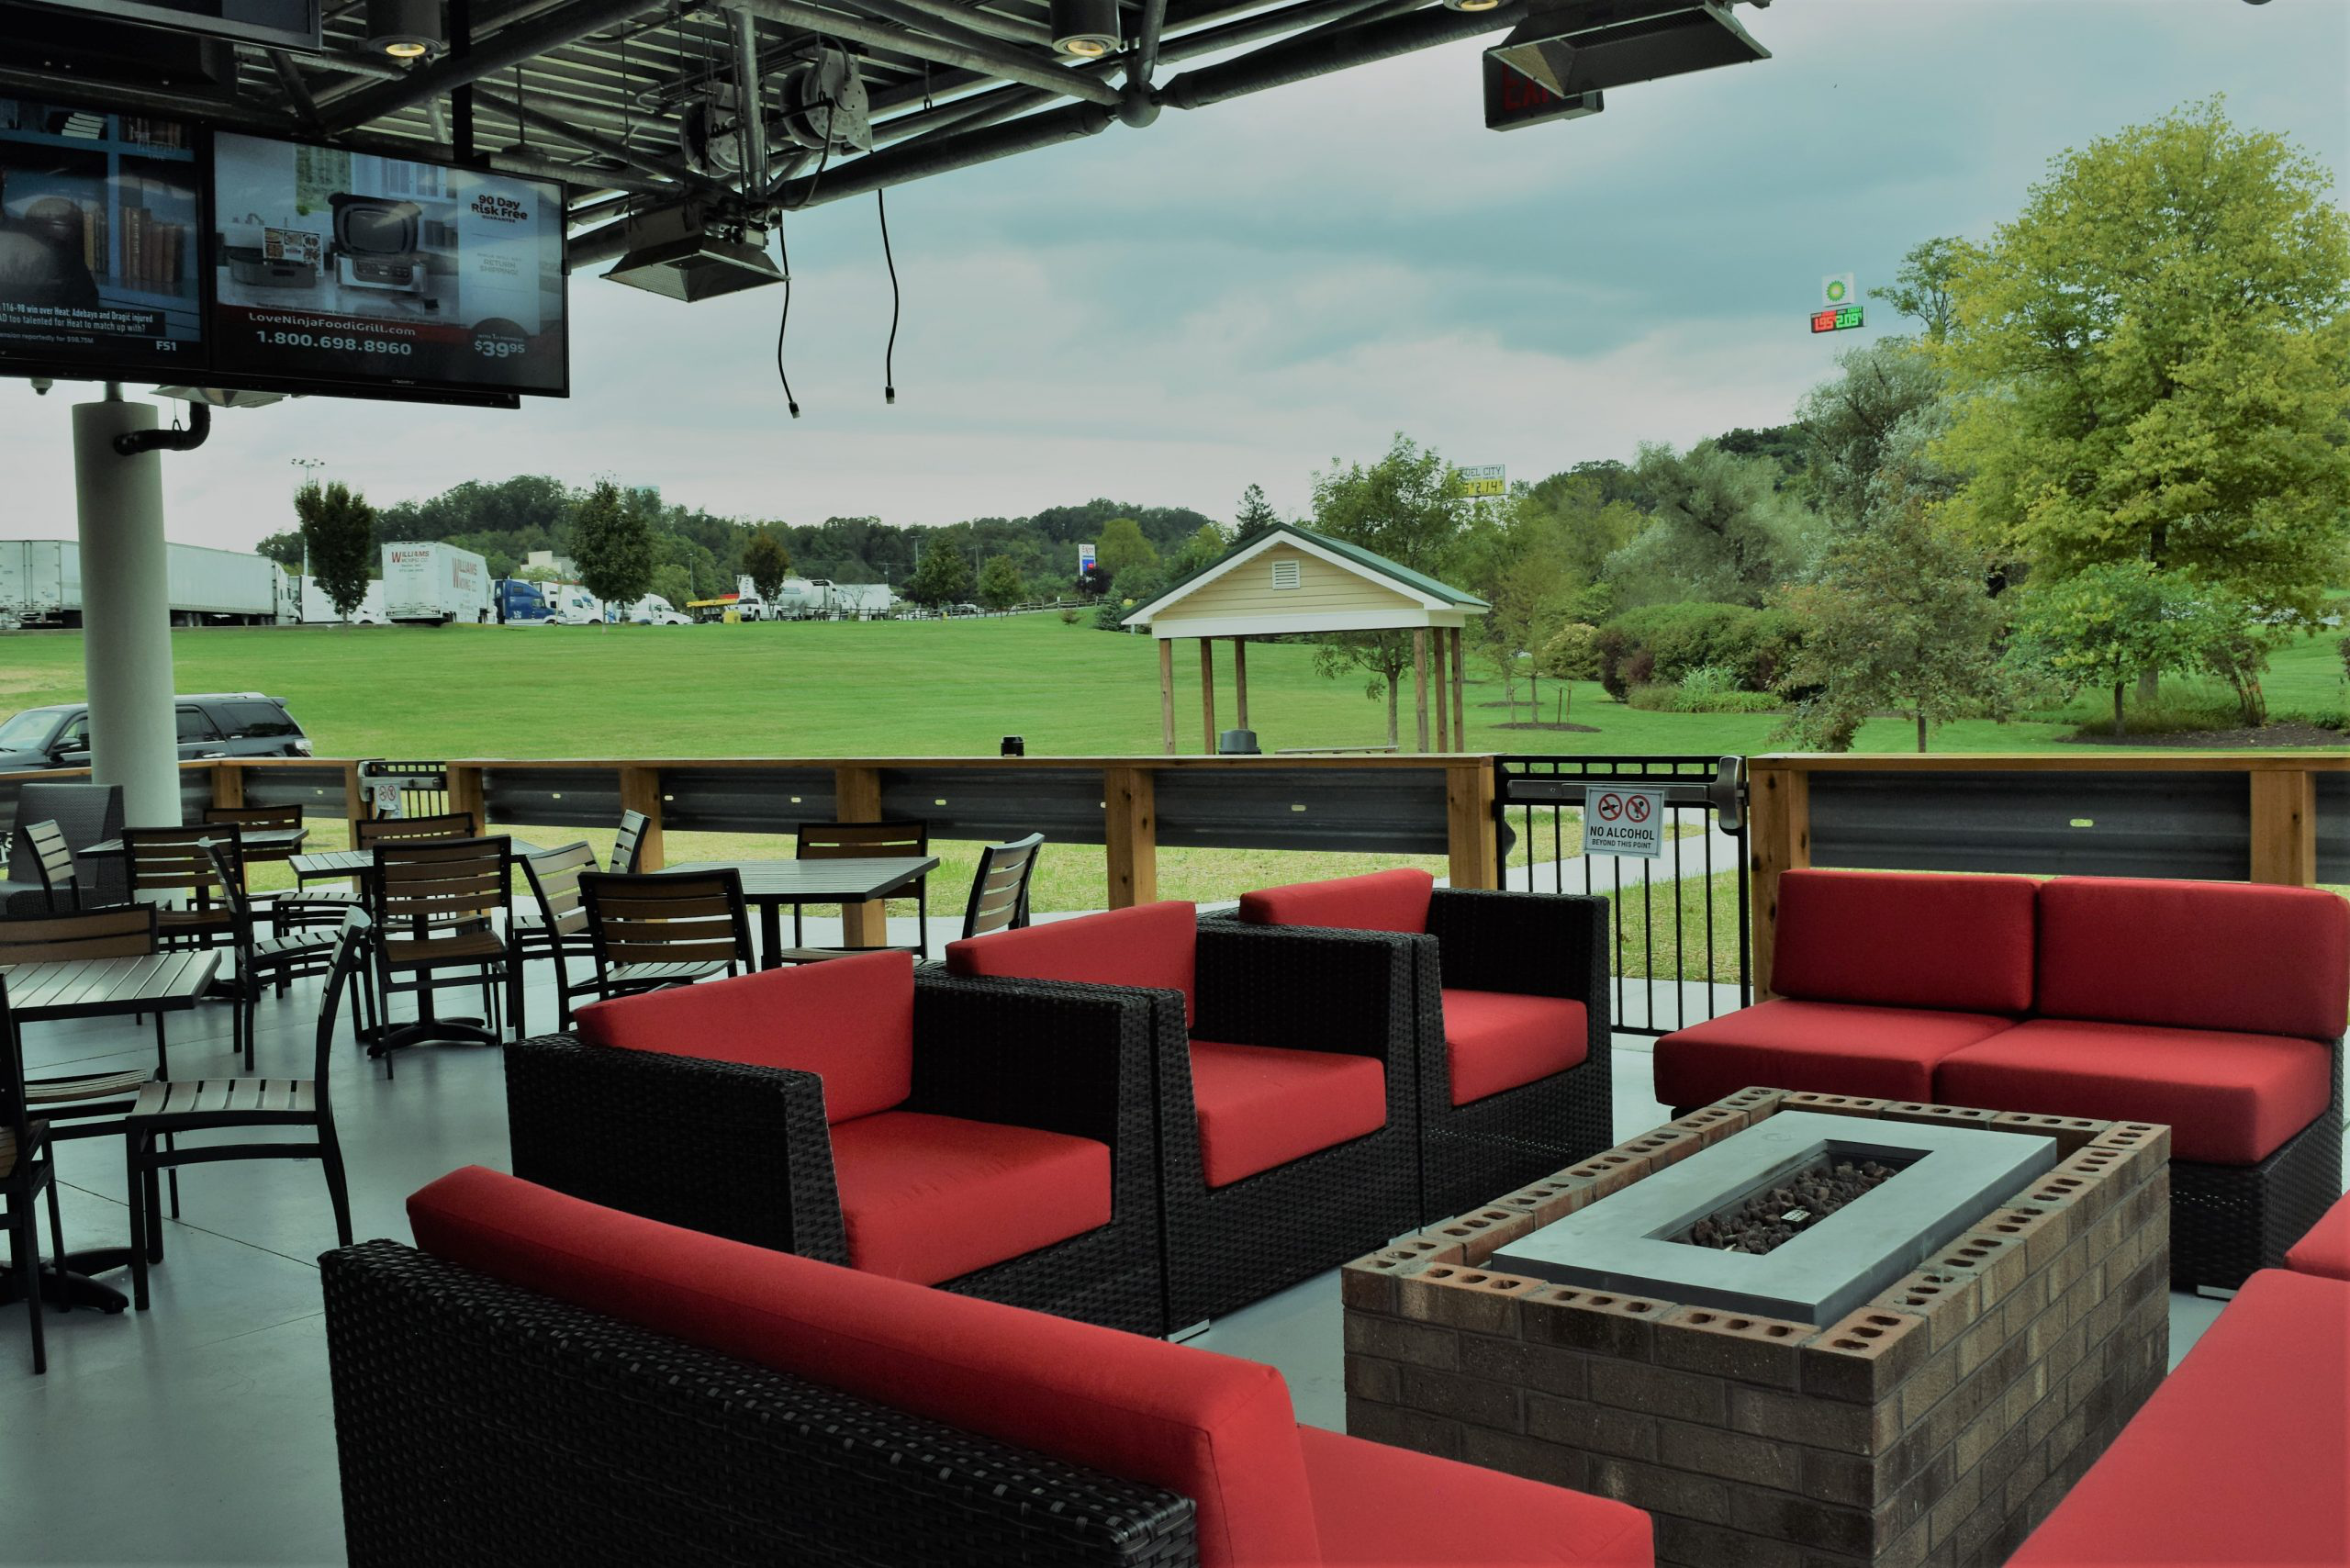 Outdoor seating and fire pit at Quaker Steak and Lube Restaurant